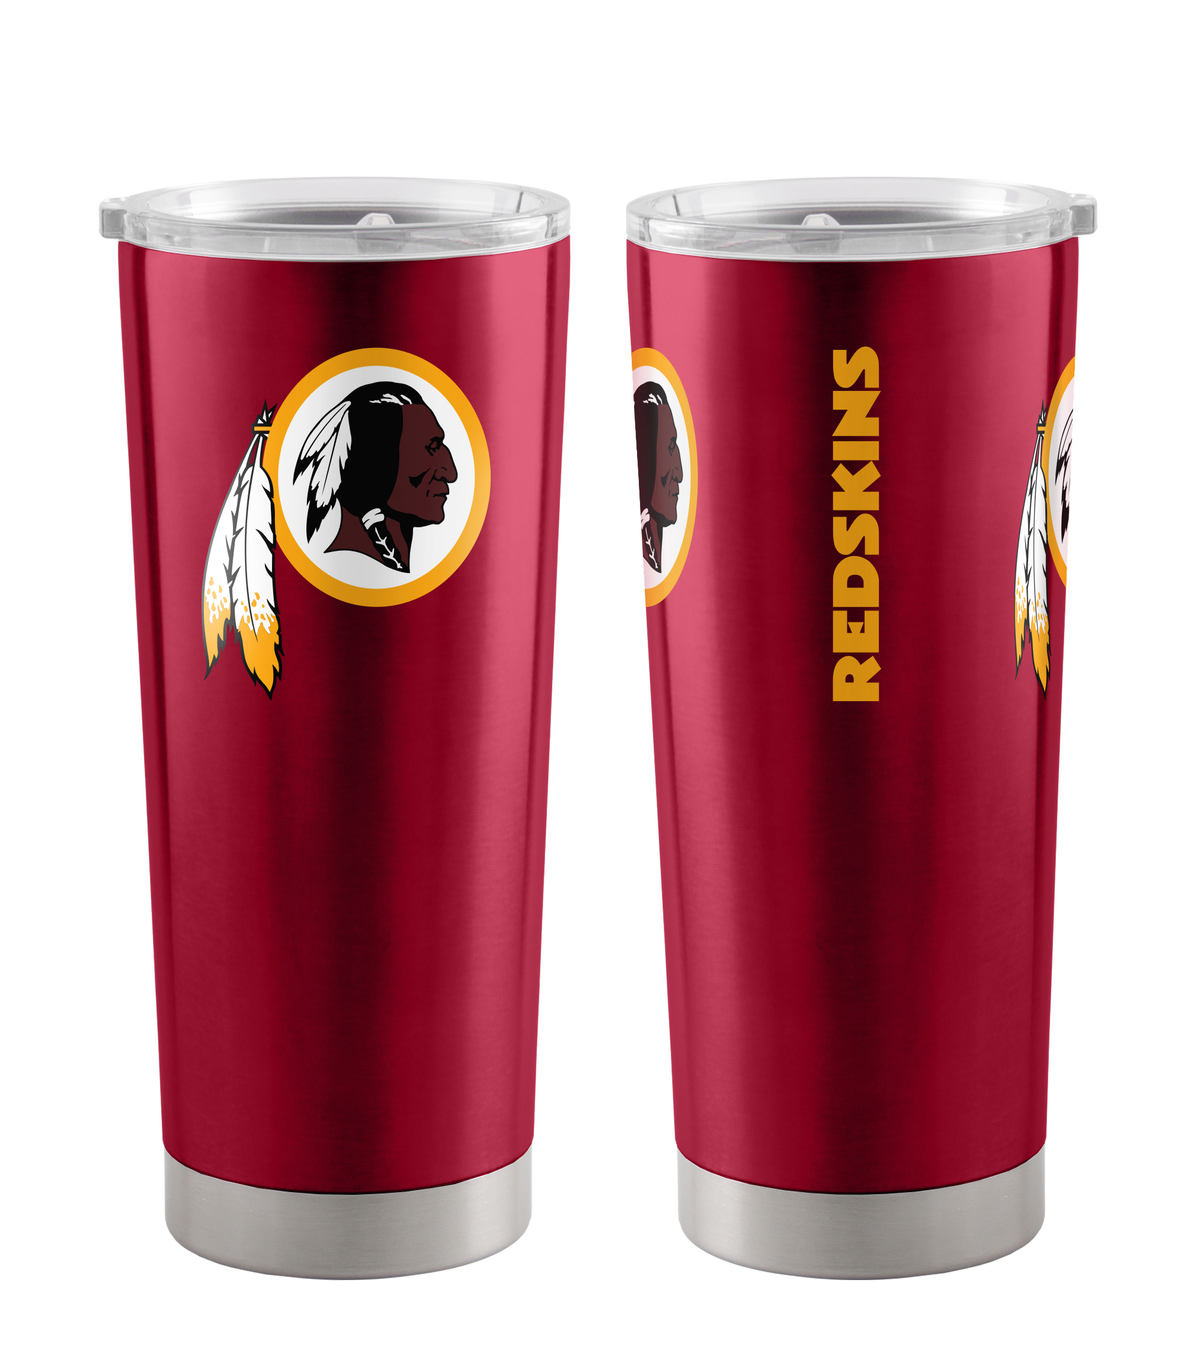 Washington Redskins 20 oz Insulated Stainless Steel Tumbler